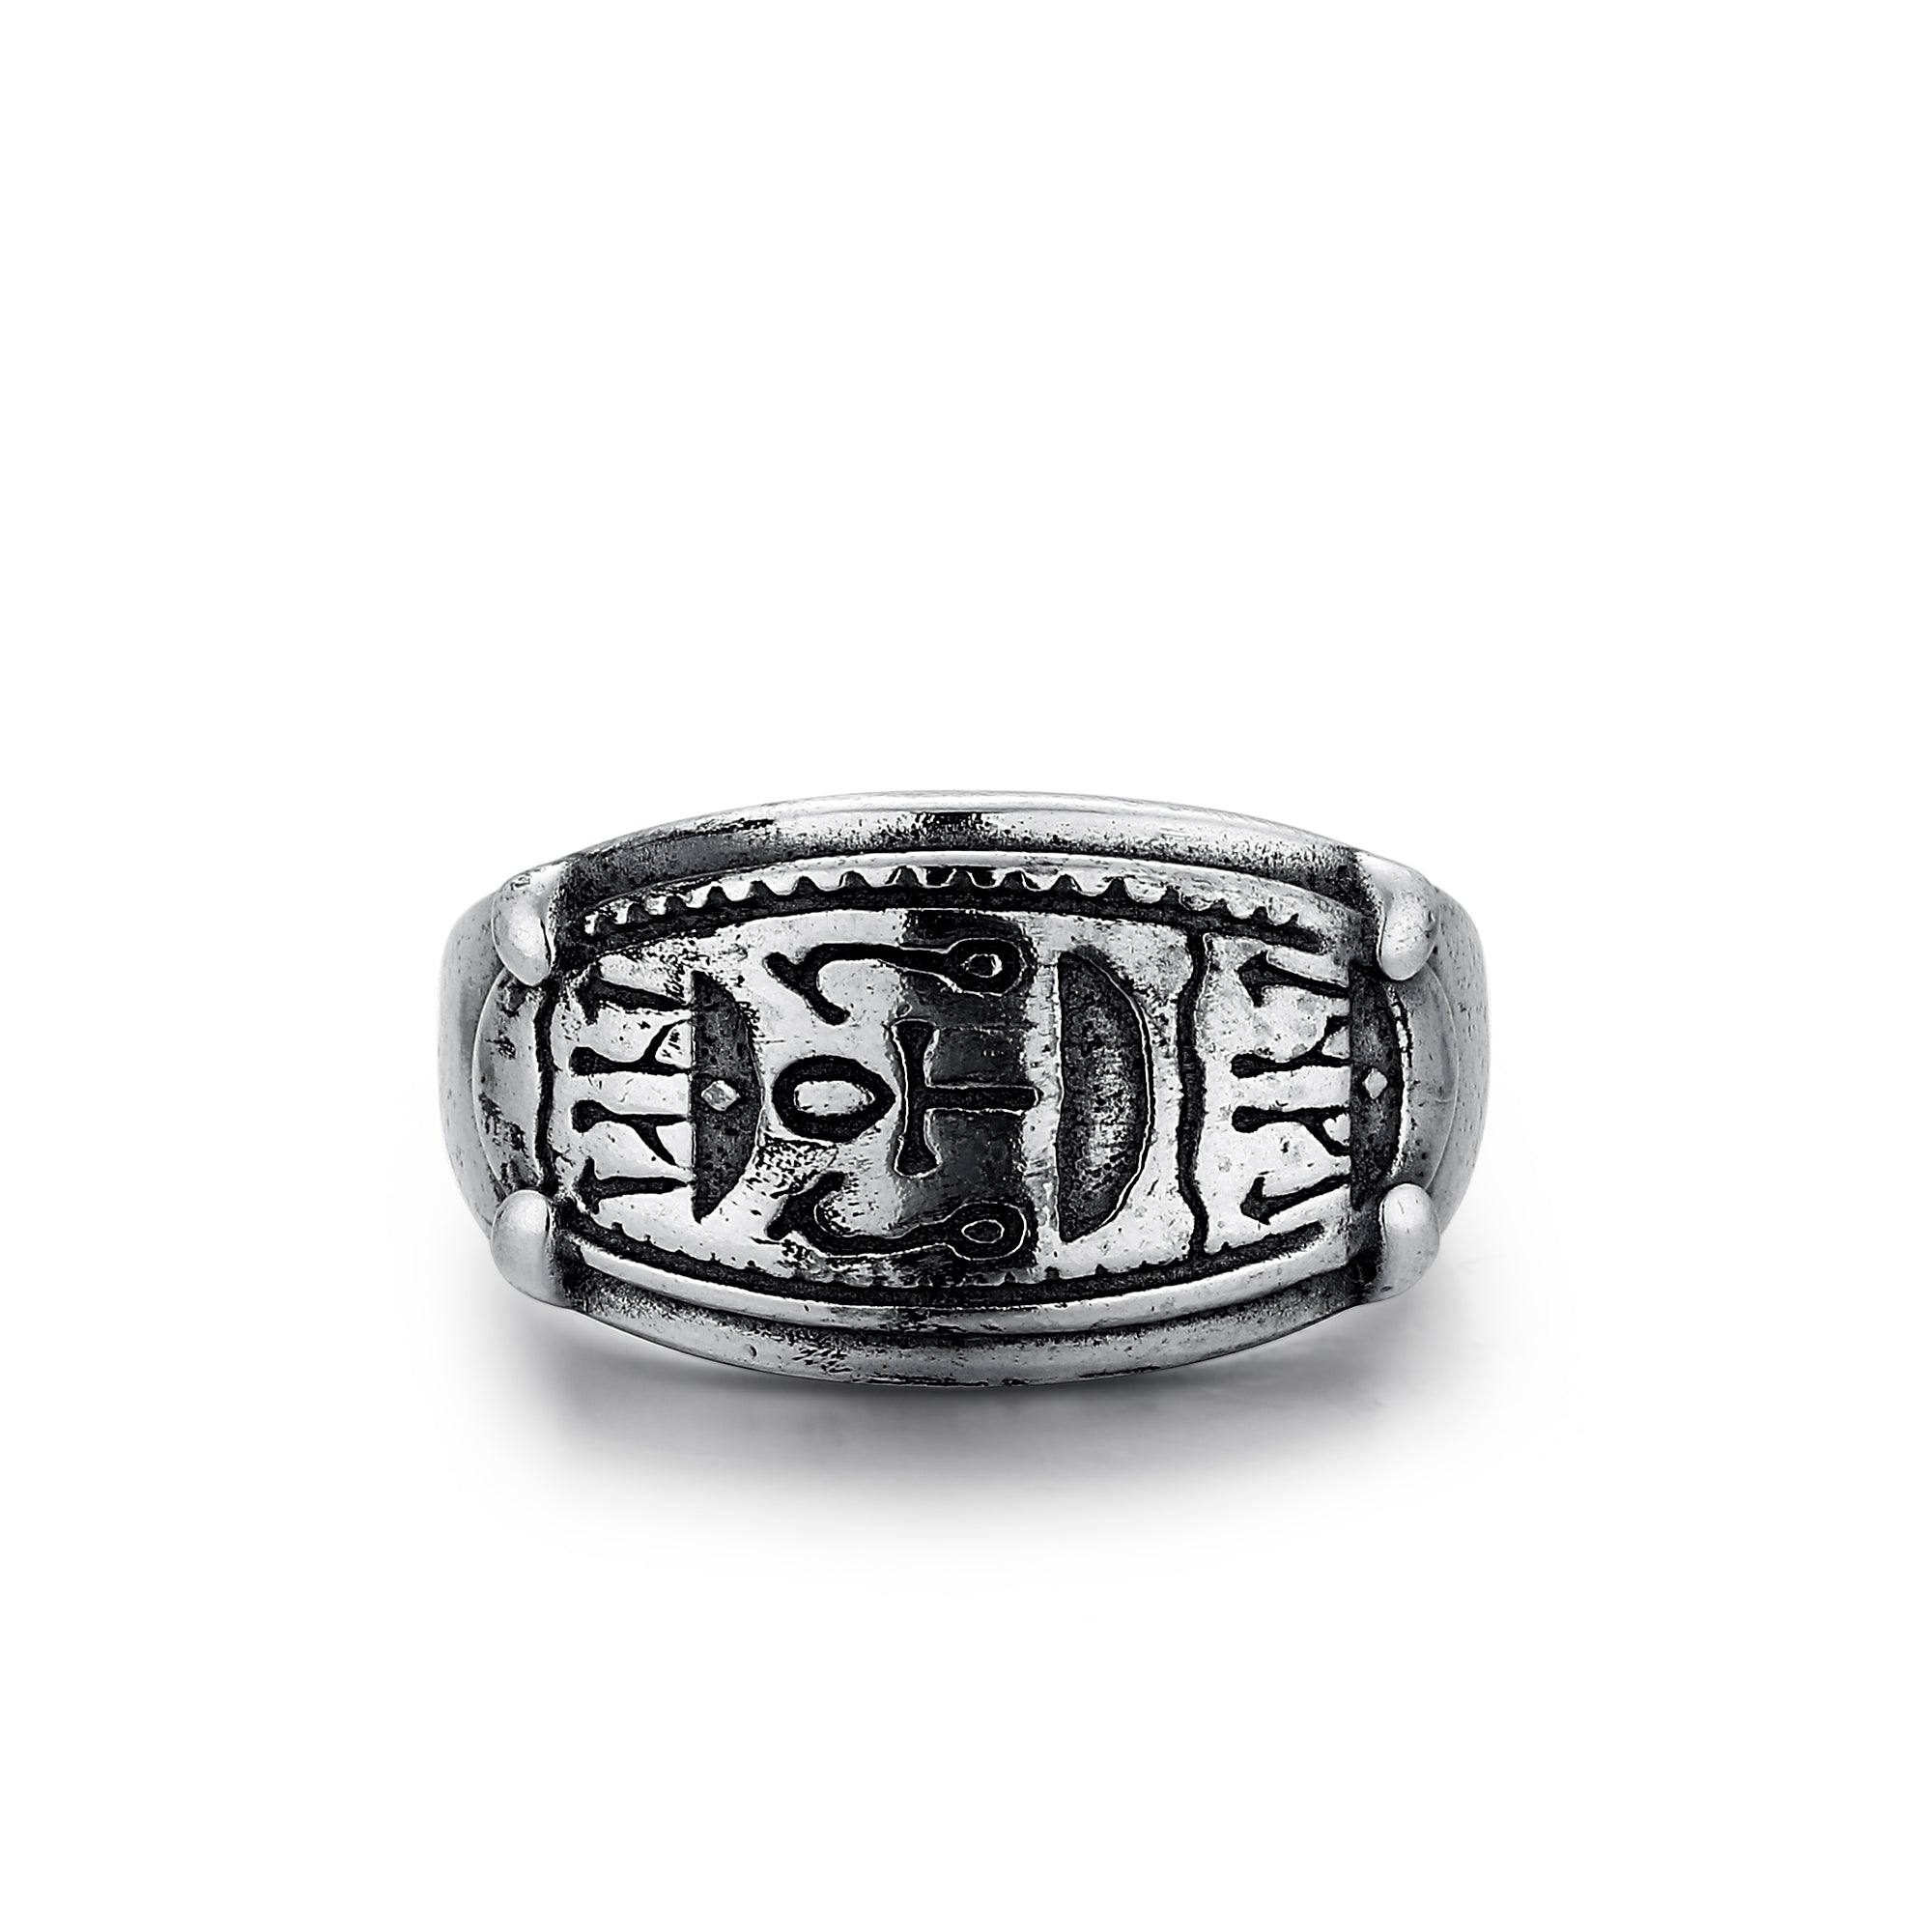 Oval Ring with Hieroglyphics